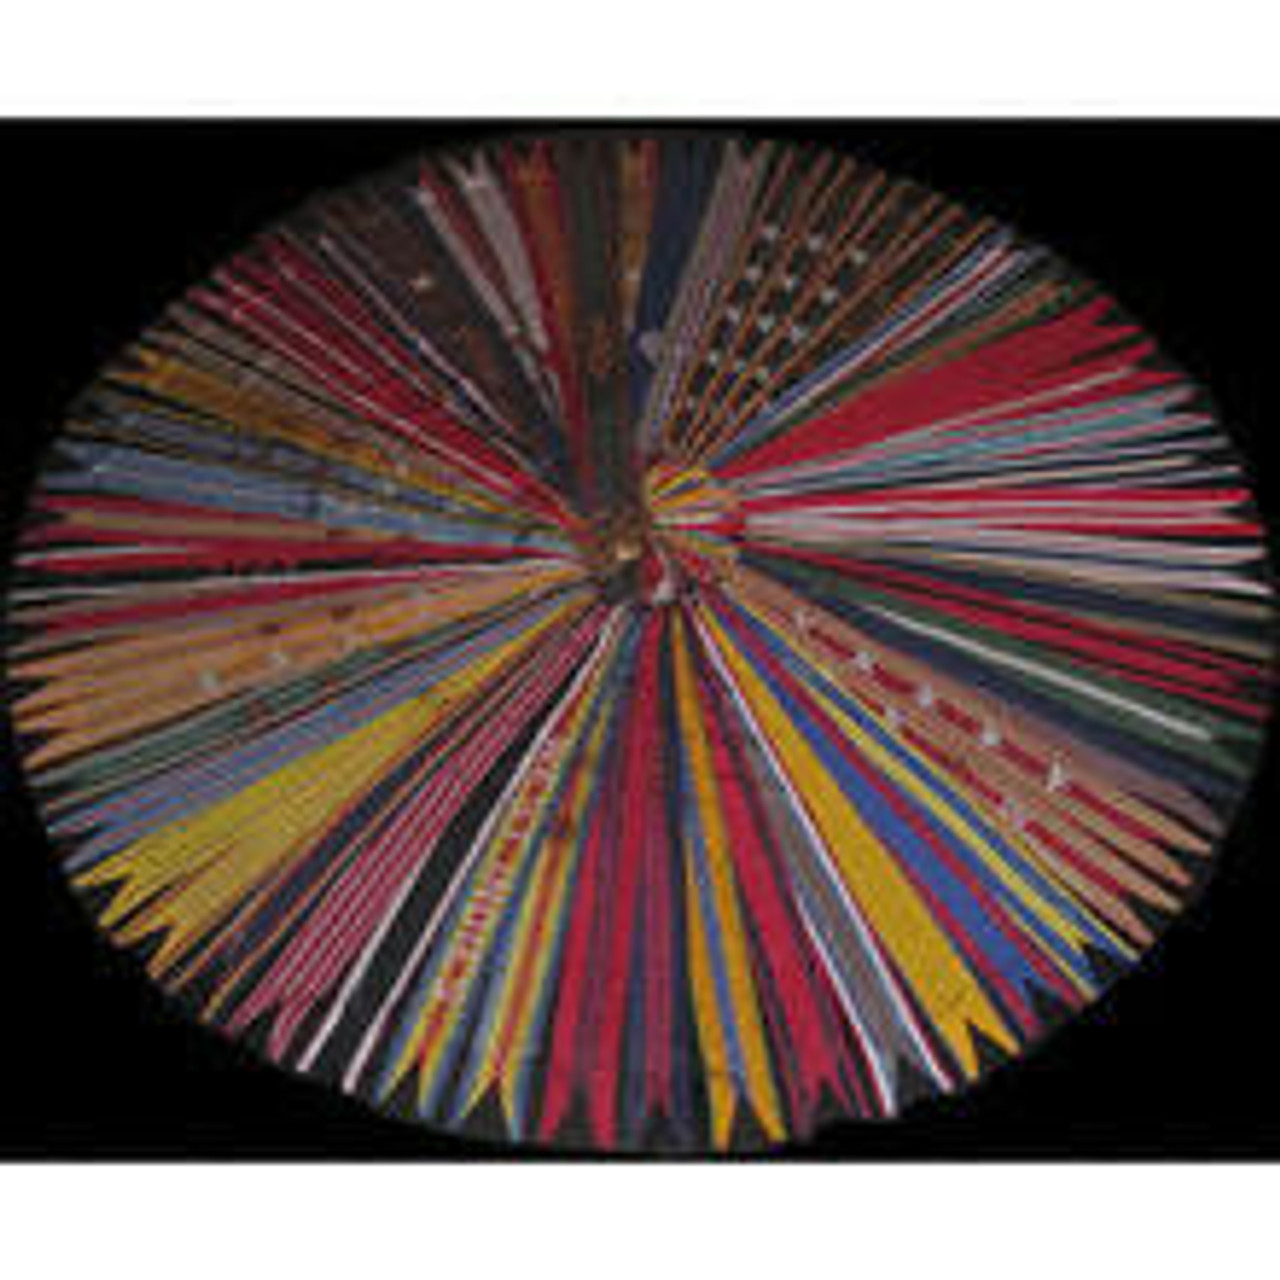 Many colorful army streamers laid out in a circle with a black background.